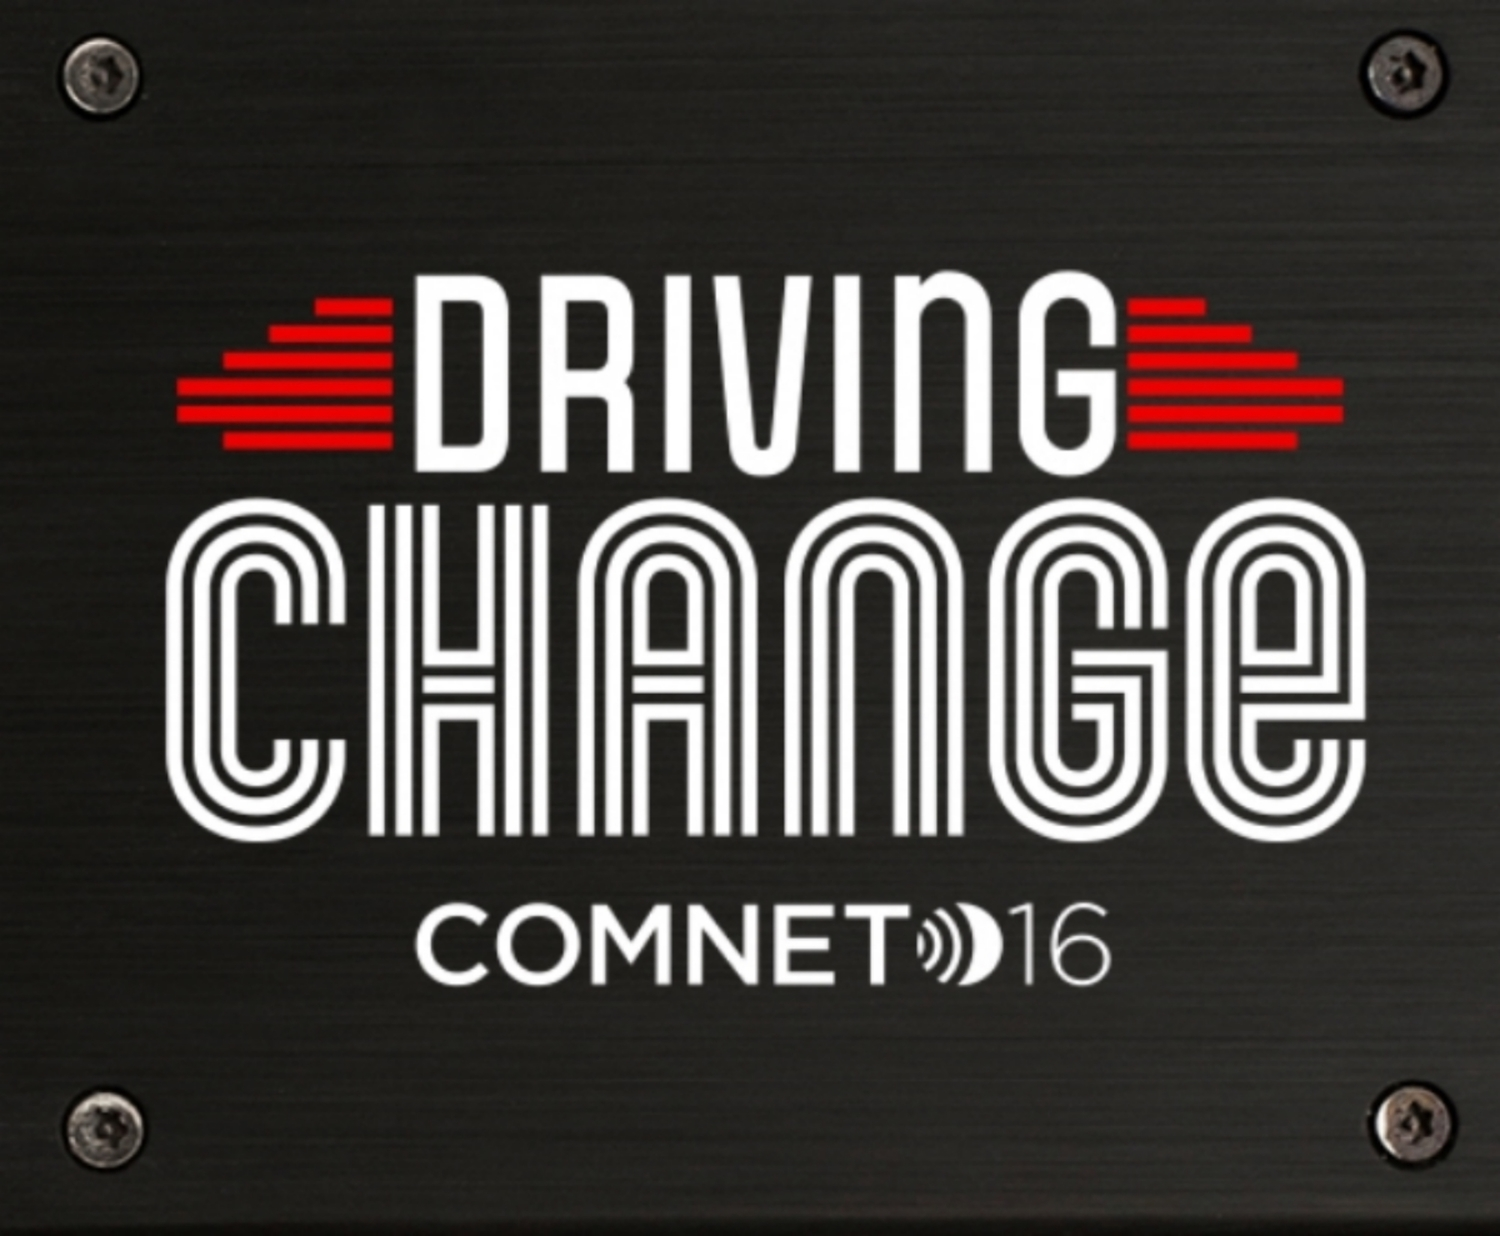 ComNet16: Driving Change